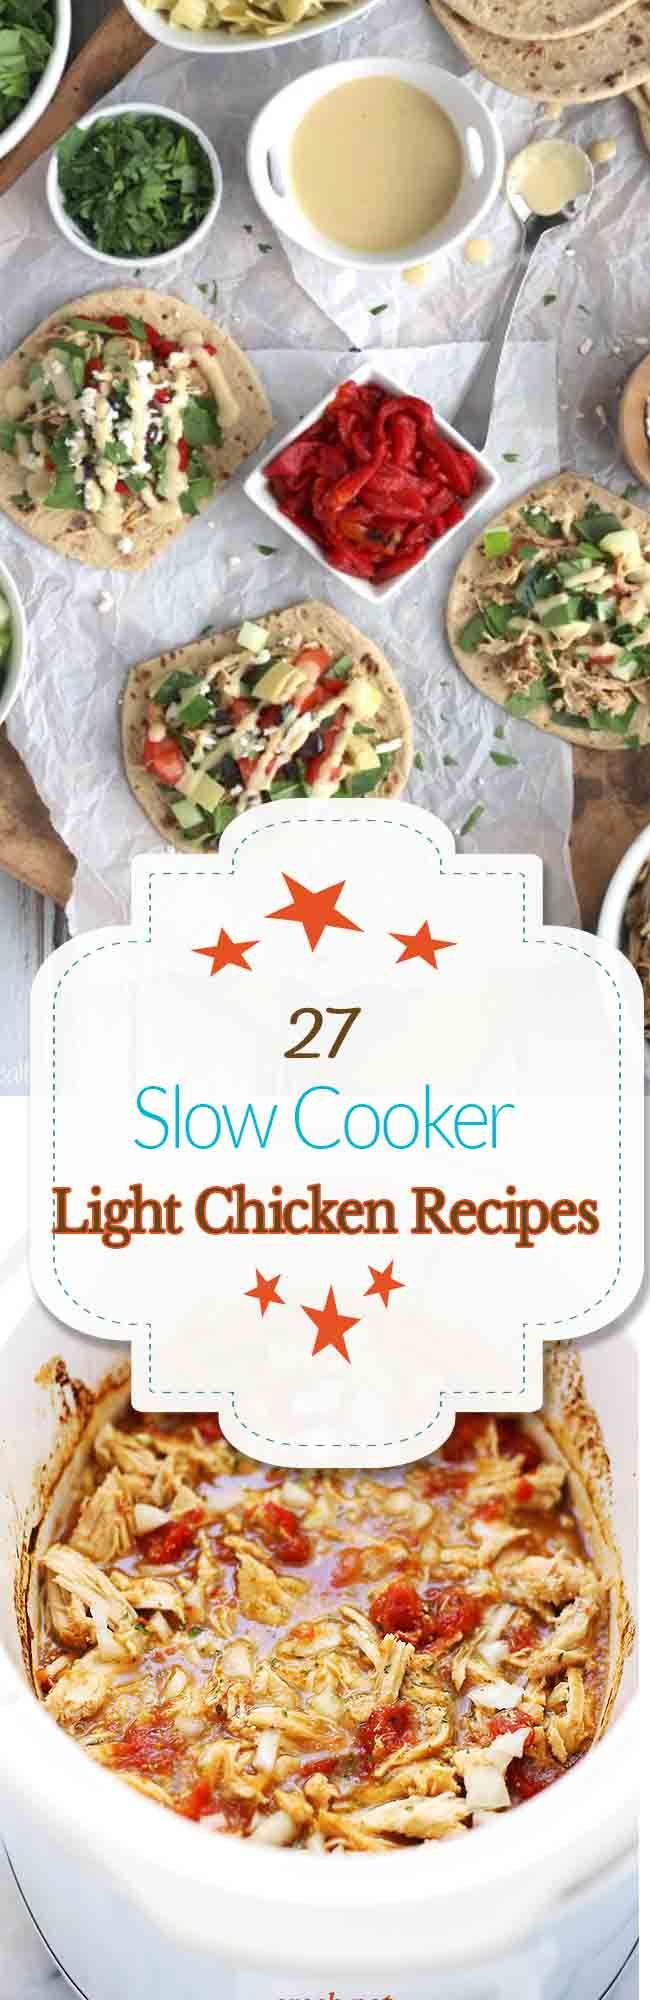 Are you keeping your 2016 healthy resolutions? Here are 27 light slow cooker recipes that star chicken. Eating light doesn't mean sacrificing flavor – you can still enjoy flavorful filling meals! Chicken breasts are a great low-calorie, high-quality protein that will fill you up while saving you more calories than other protein choices. There are [...]